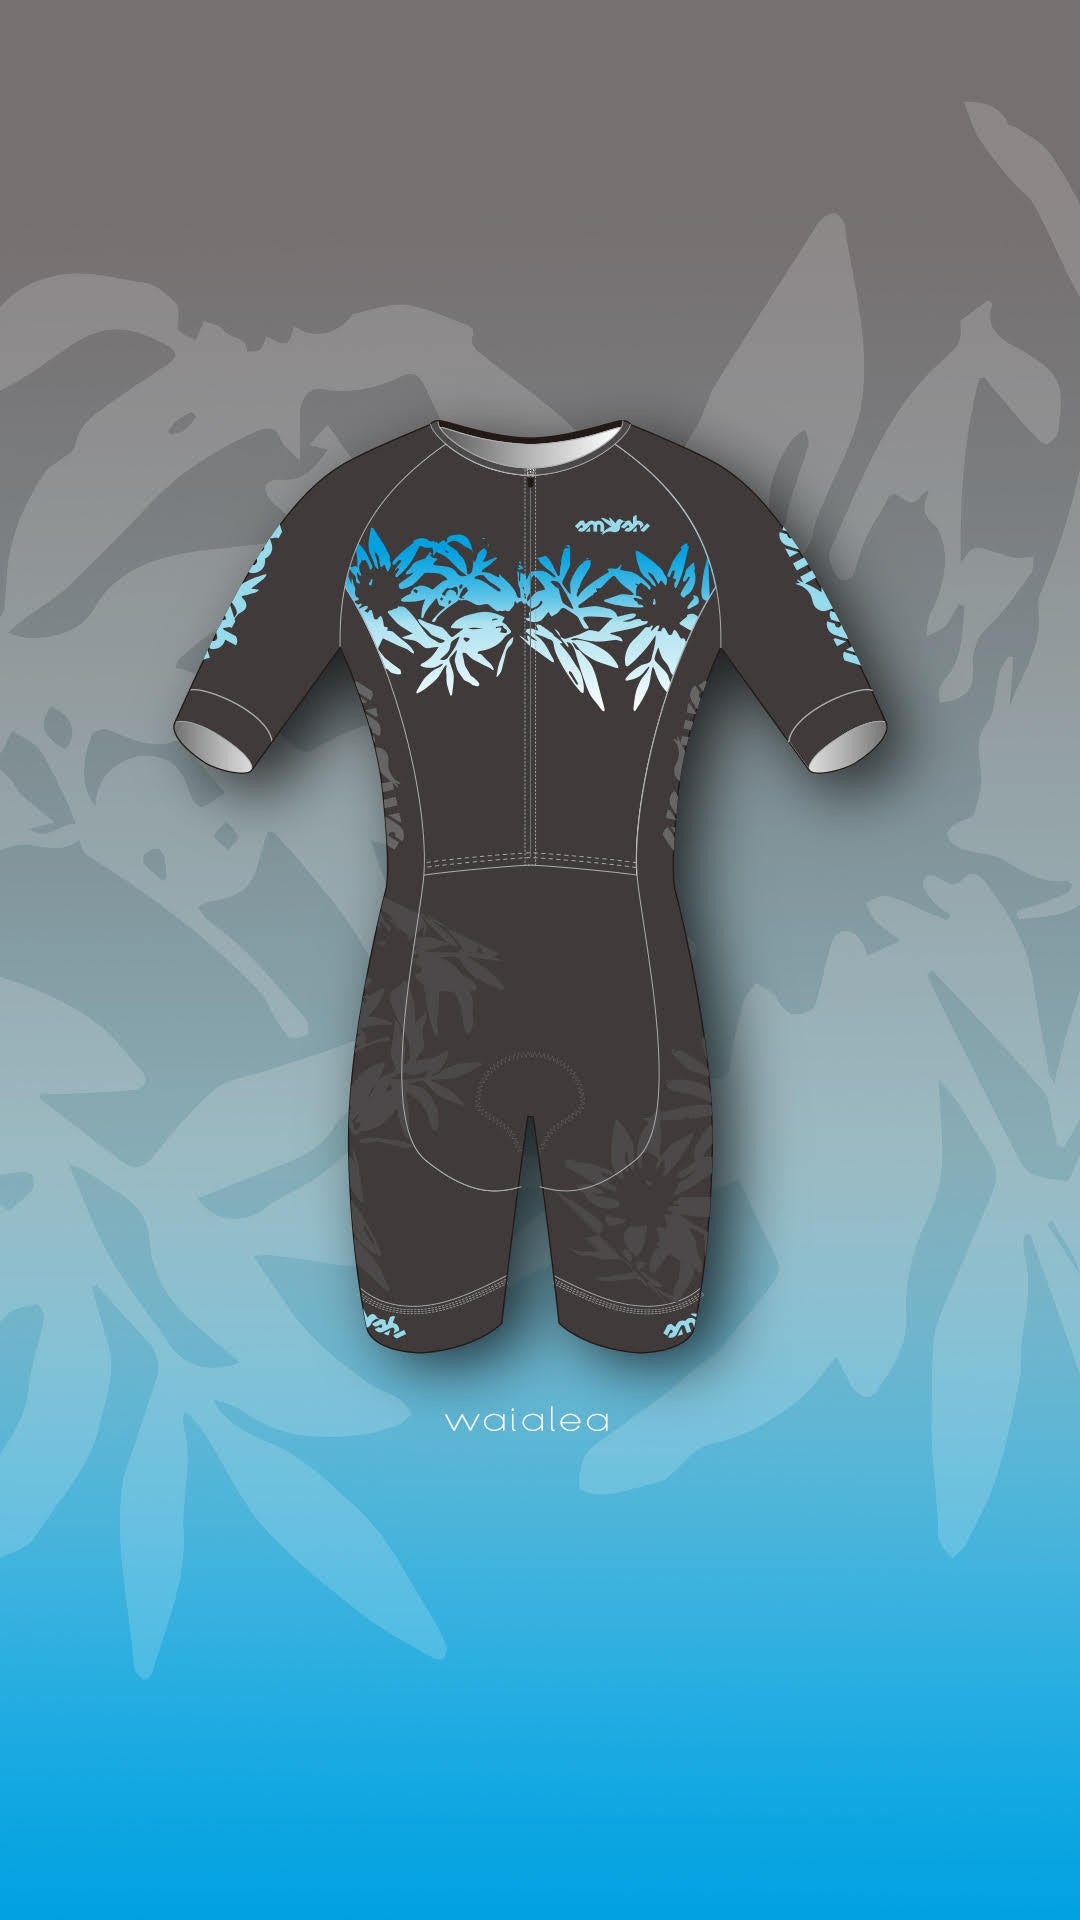 Men's Custom Waialea Aerosuit